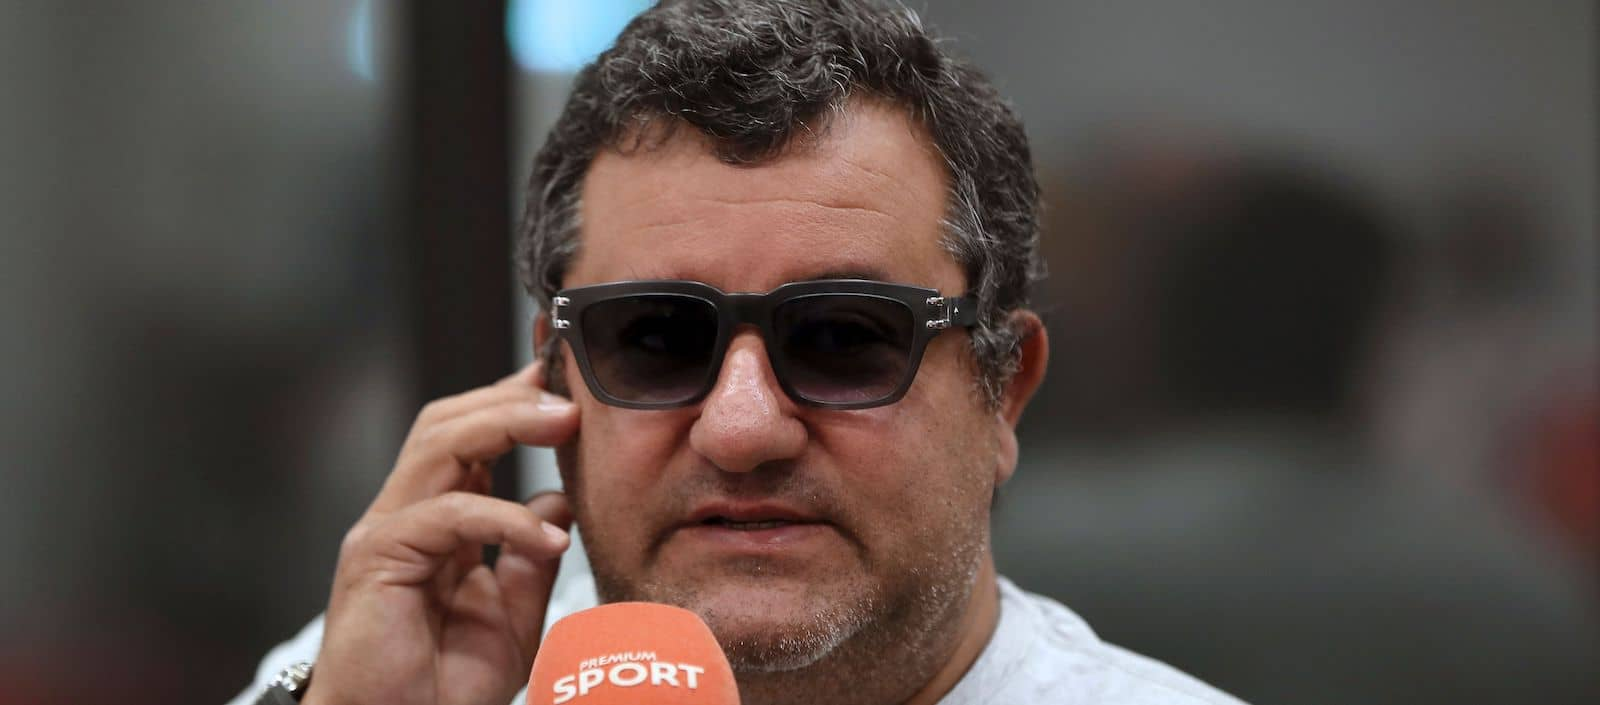 Paul Pogba's agent Mino Raiola promises Real Madrid 'great player'